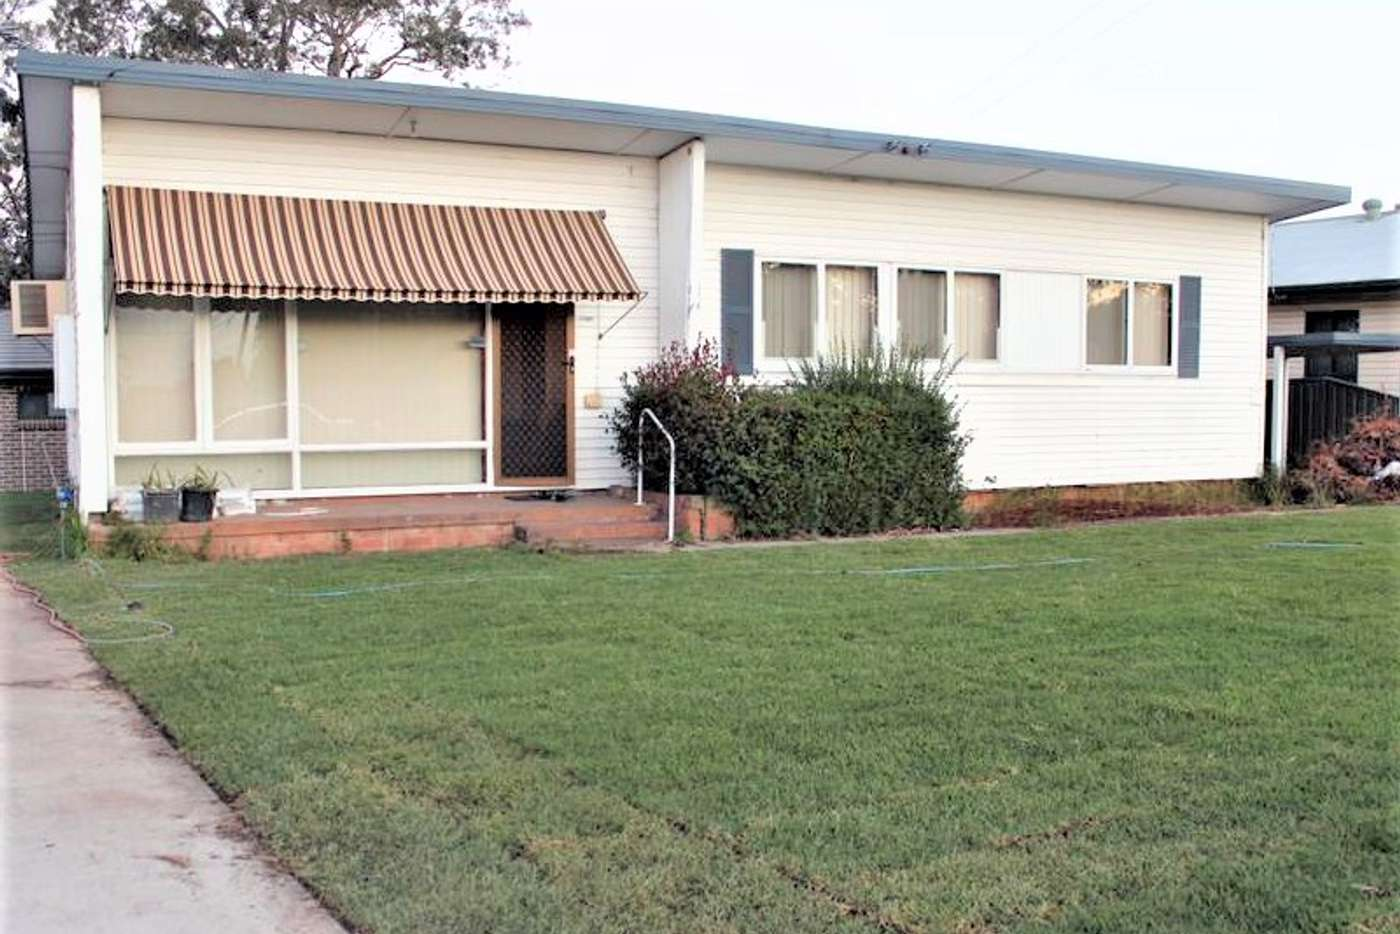 Main view of Homely house listing, 59 Heffron Road, Lalor Park NSW 2147